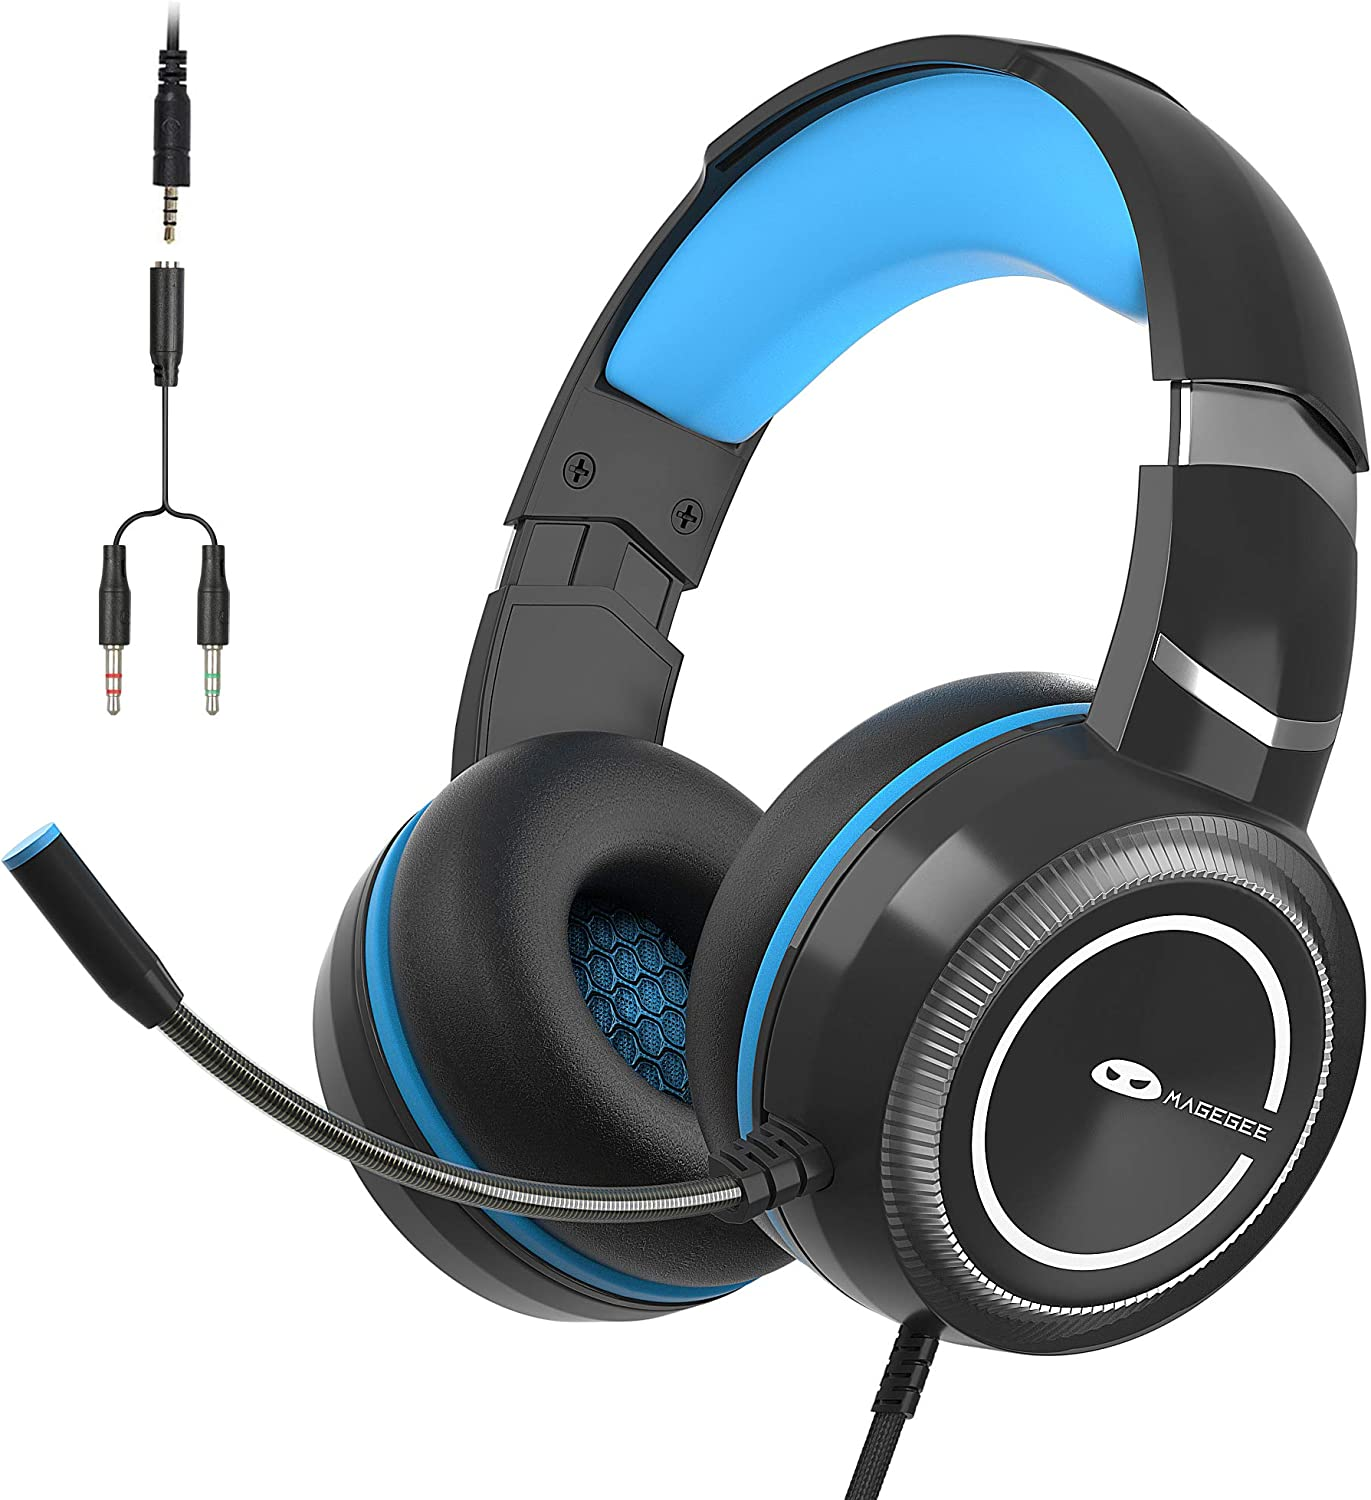 MageGee Max 65% OFF E6 Gaming Ranking TOP13 Headset with Wired Over-Ear Mi